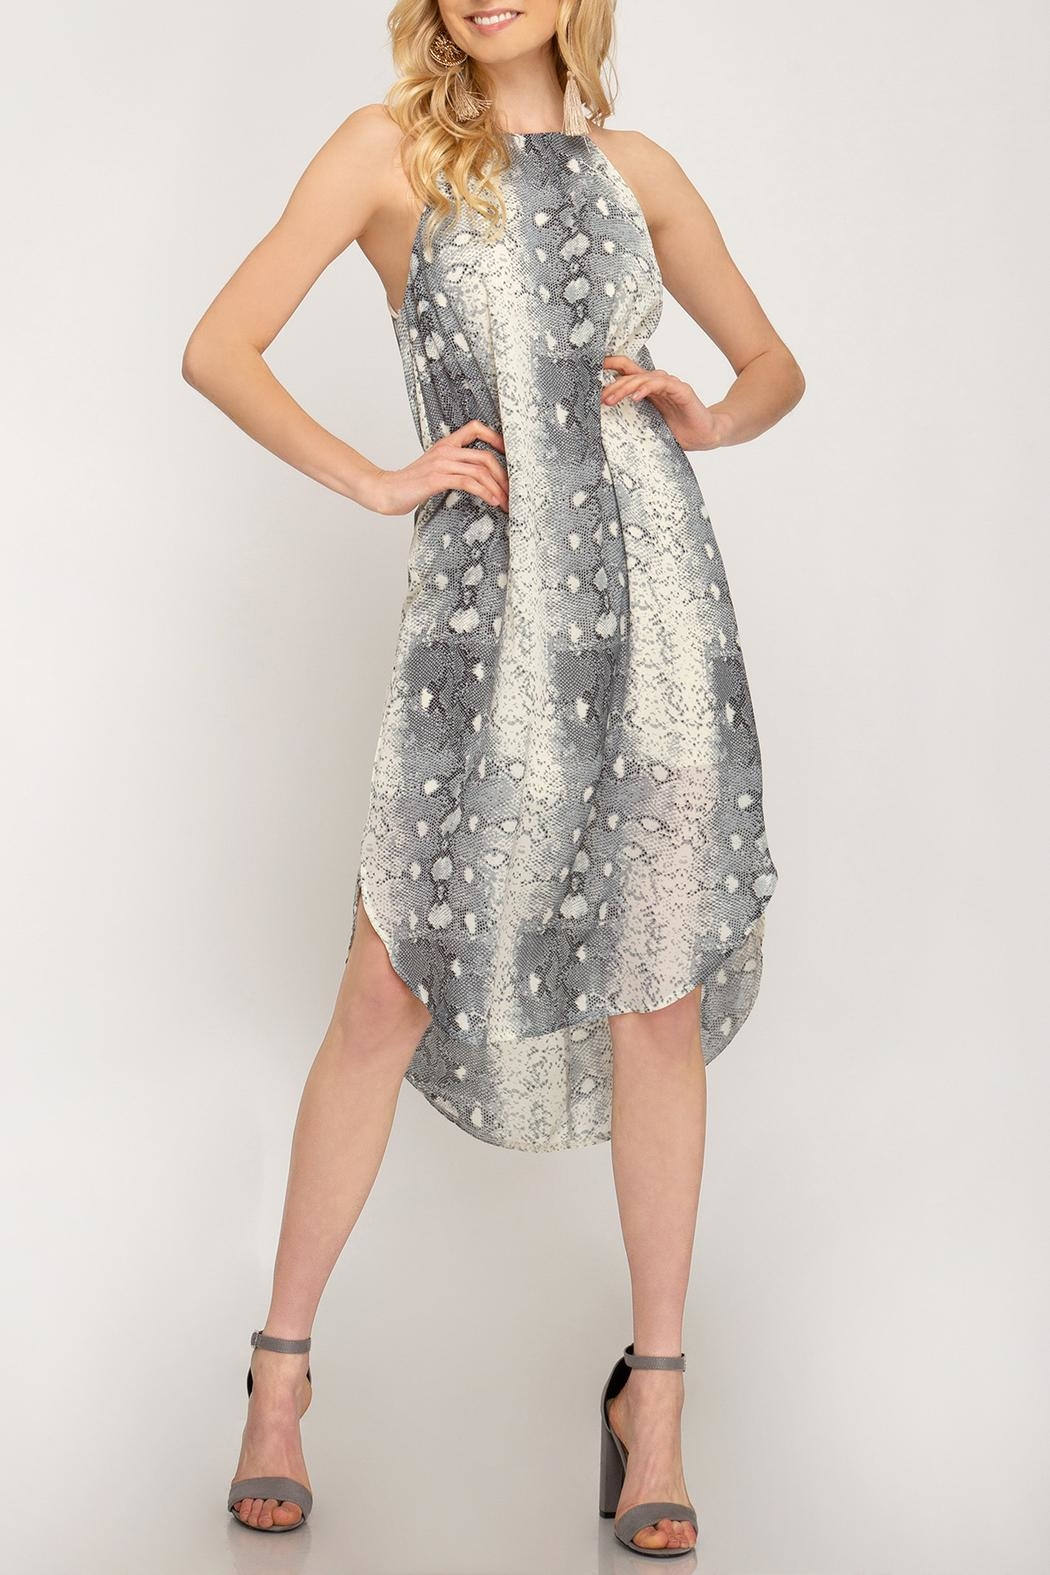 She + Sky Snakeskin Slip Dress - Front Full Image